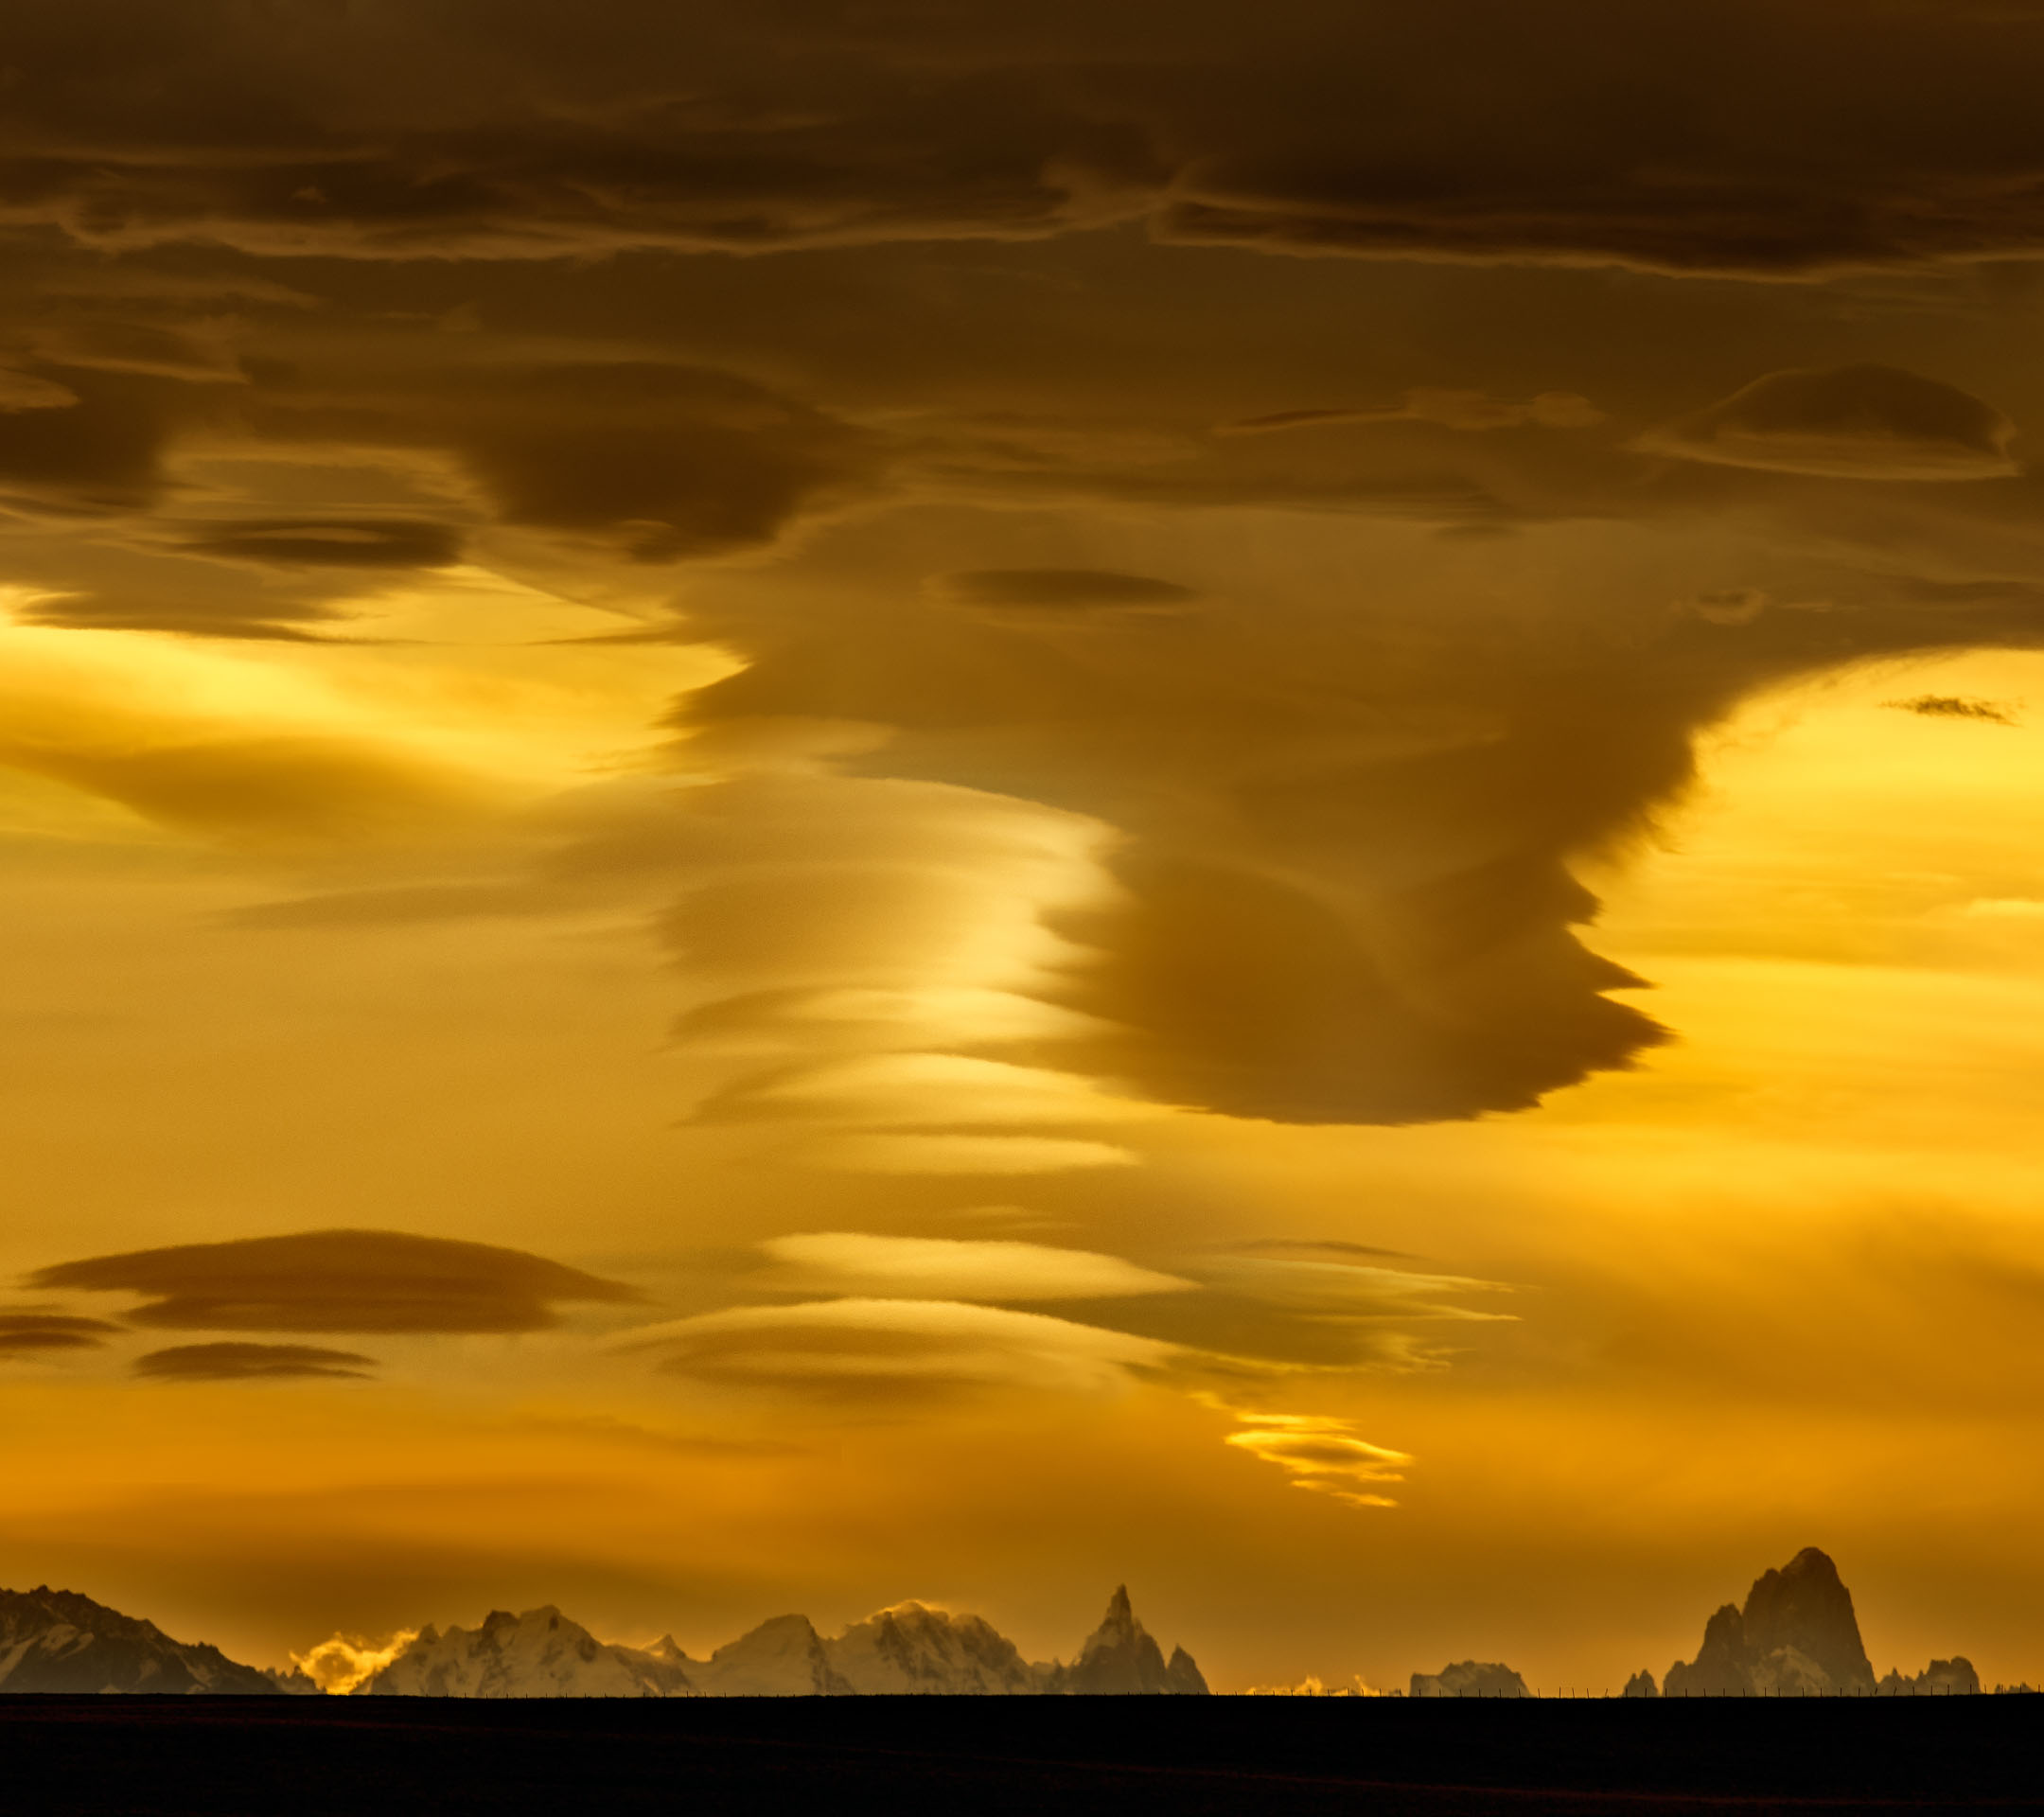 Panorama of Mt Fitz Roy and Cerro Torre under lenticular clouds at sunset – Mirador Julio Heredia